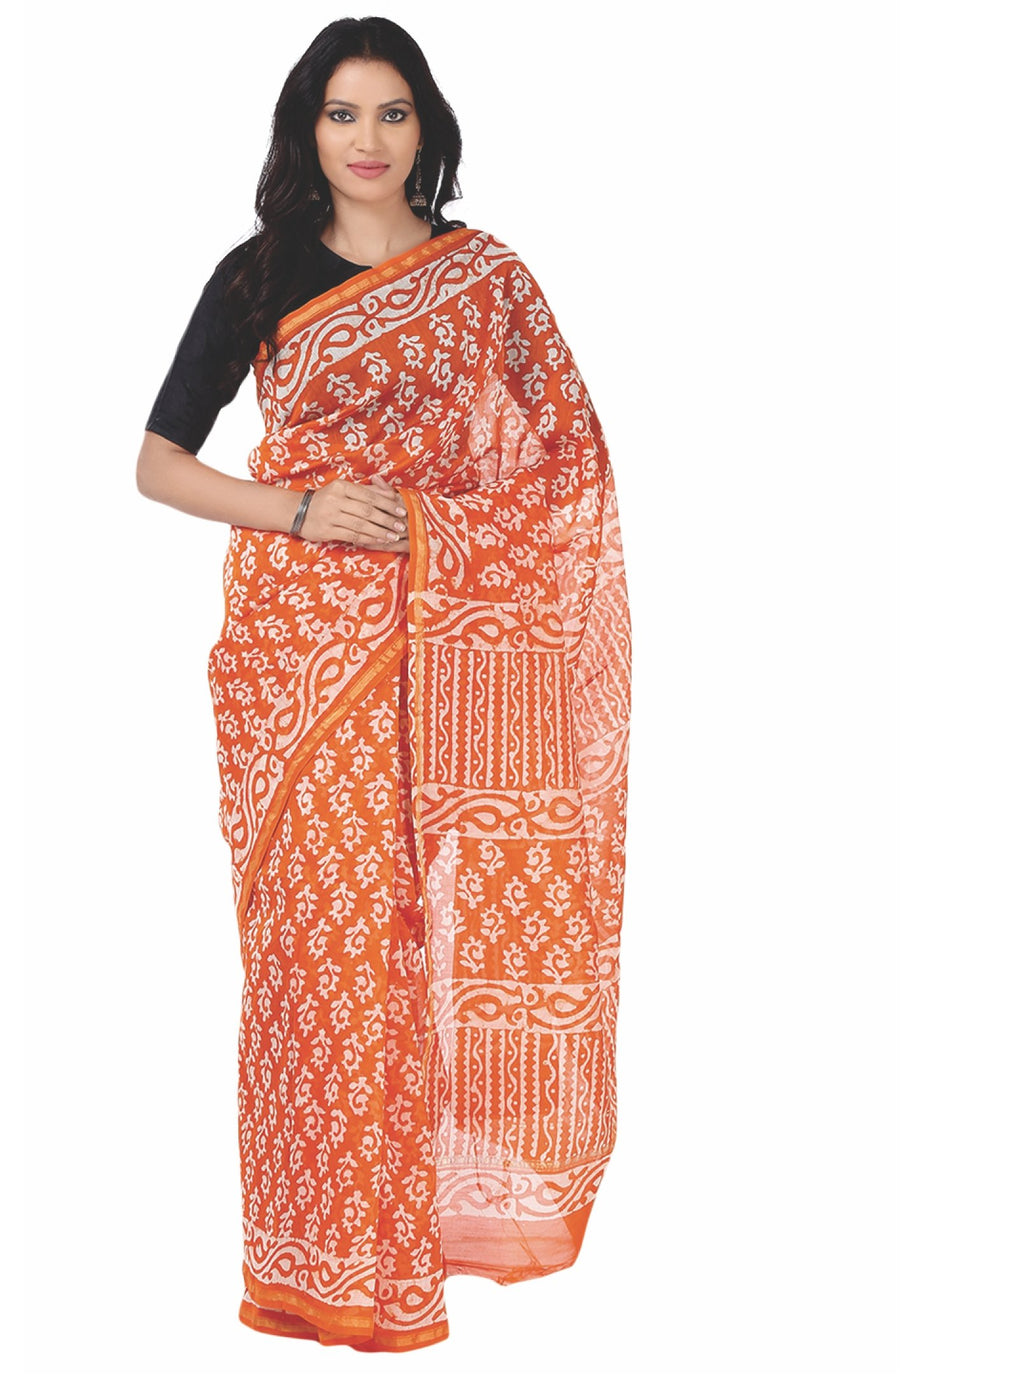 Orange Chanderi Silk Batik Hand Block Print Handcrafted Saree-Saree-Kalakari India-RDSNSA0052-Batik, Chanderi, Geographical Indication, Hand Blocks, Hand Crafted, Heritage Prints, Sarees, Silk, Sustainable Fabrics-[Linen,Ethnic,wear,Fashionista,Handloom,Handicraft,Indigo,blockprint,block,print,Cotton,Chanderi,Blue, latest,classy,party,bollywood,trendy,summer,style,traditional,formal,elegant,unique,style,hand,block,print, dabu,booti,gift,present,glamorous,affordable,collectible,Sari,Saree,printed